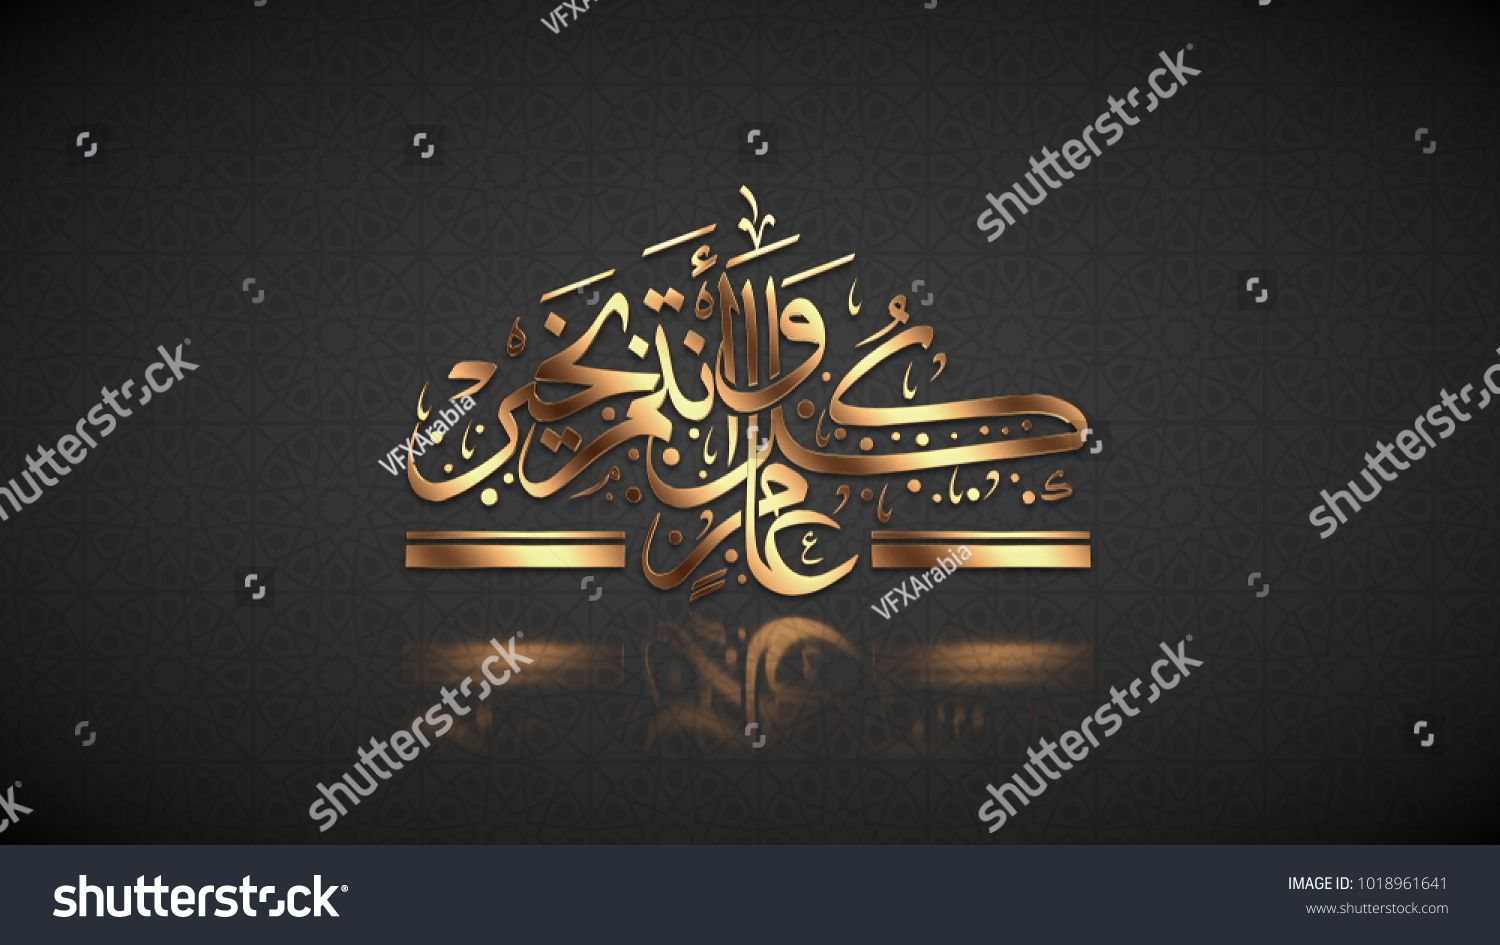 Eid mubarak and happy new year calligraphy beautiful greeting card eid mubarak and happy new year calligraphy beautiful greeting card with arabic calligraphy can m4hsunfo